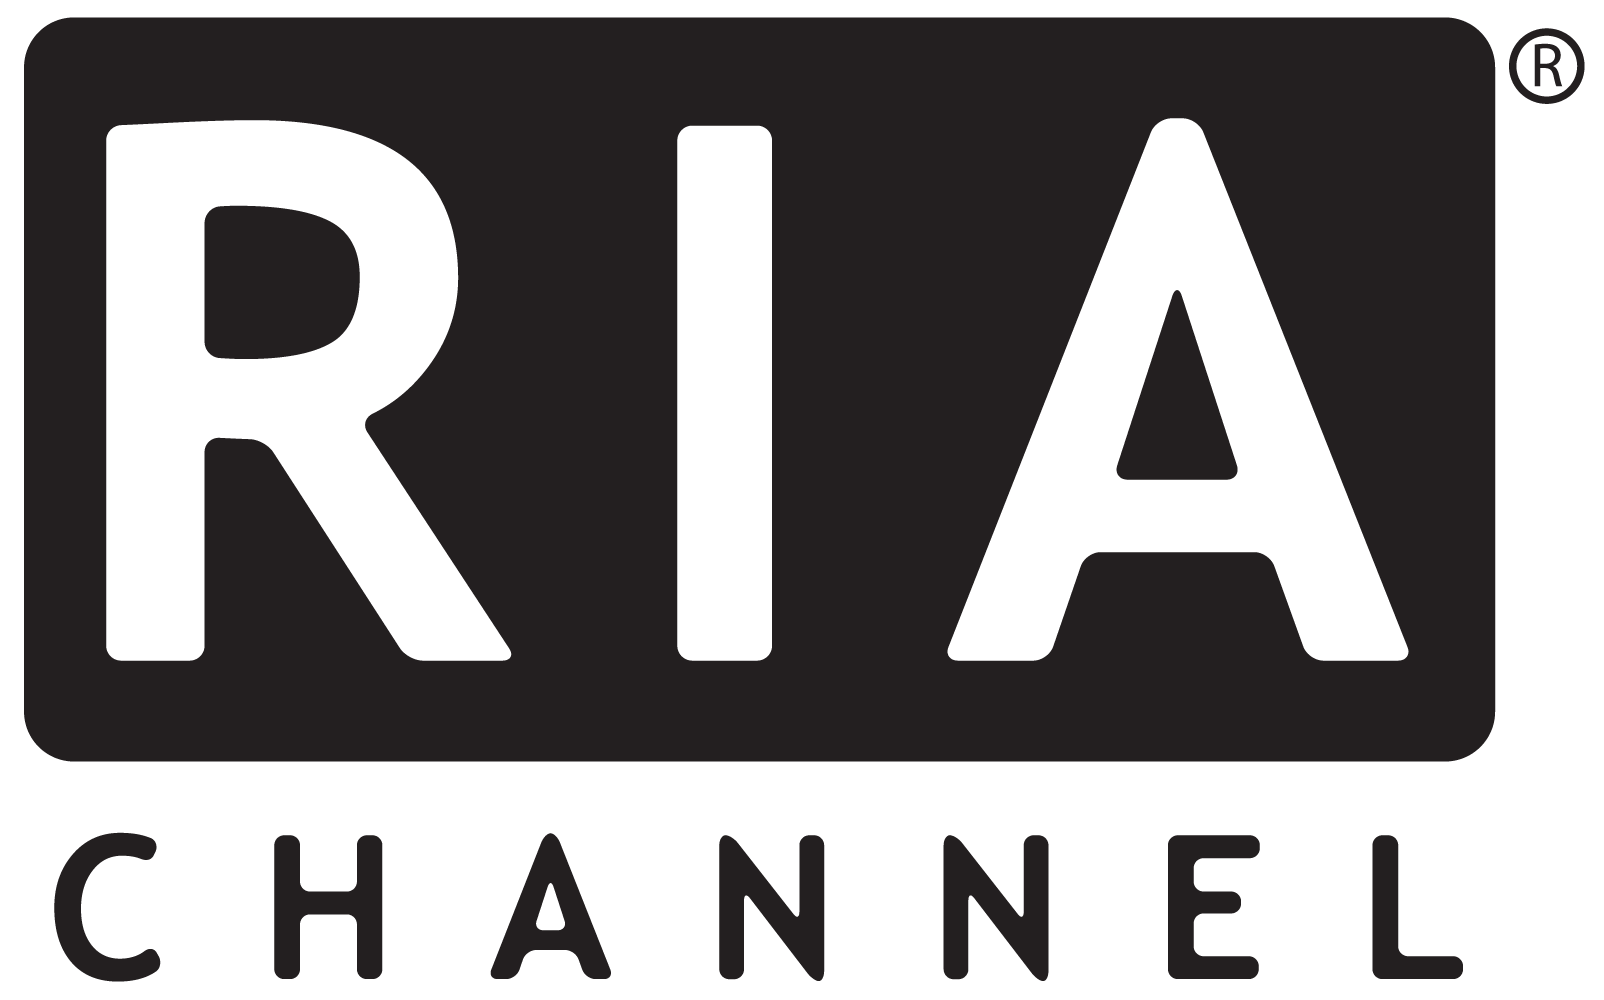 RIA-Channel-Logo-1